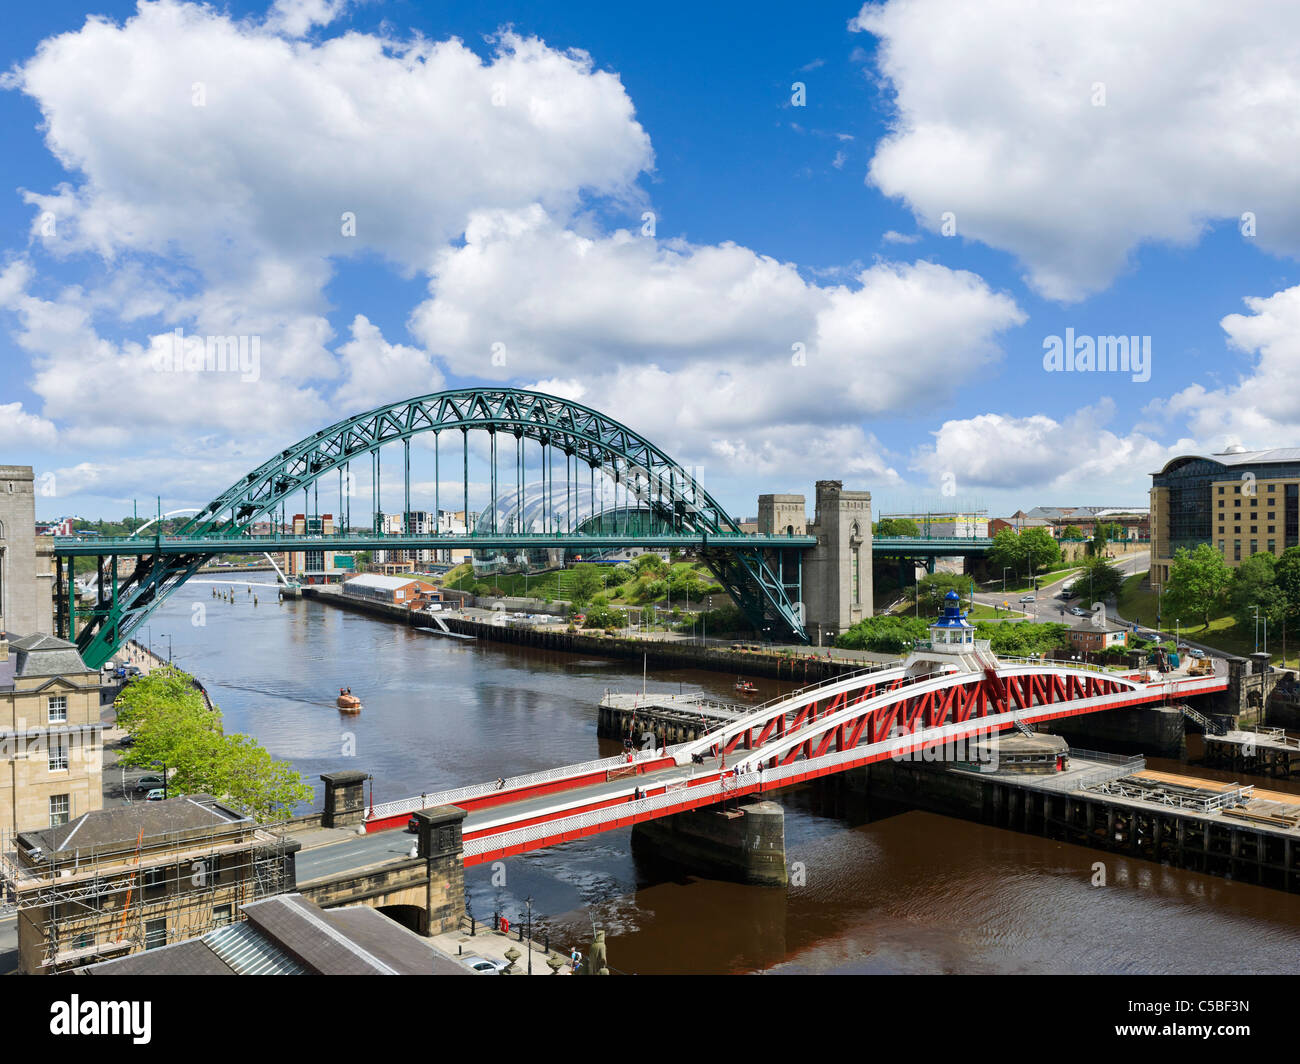 View of the River Tyne showing the Swing Bridge and Tyne Bridge with the Sage Gateshead behind, Newcastle upon Tyne, Stock Photo